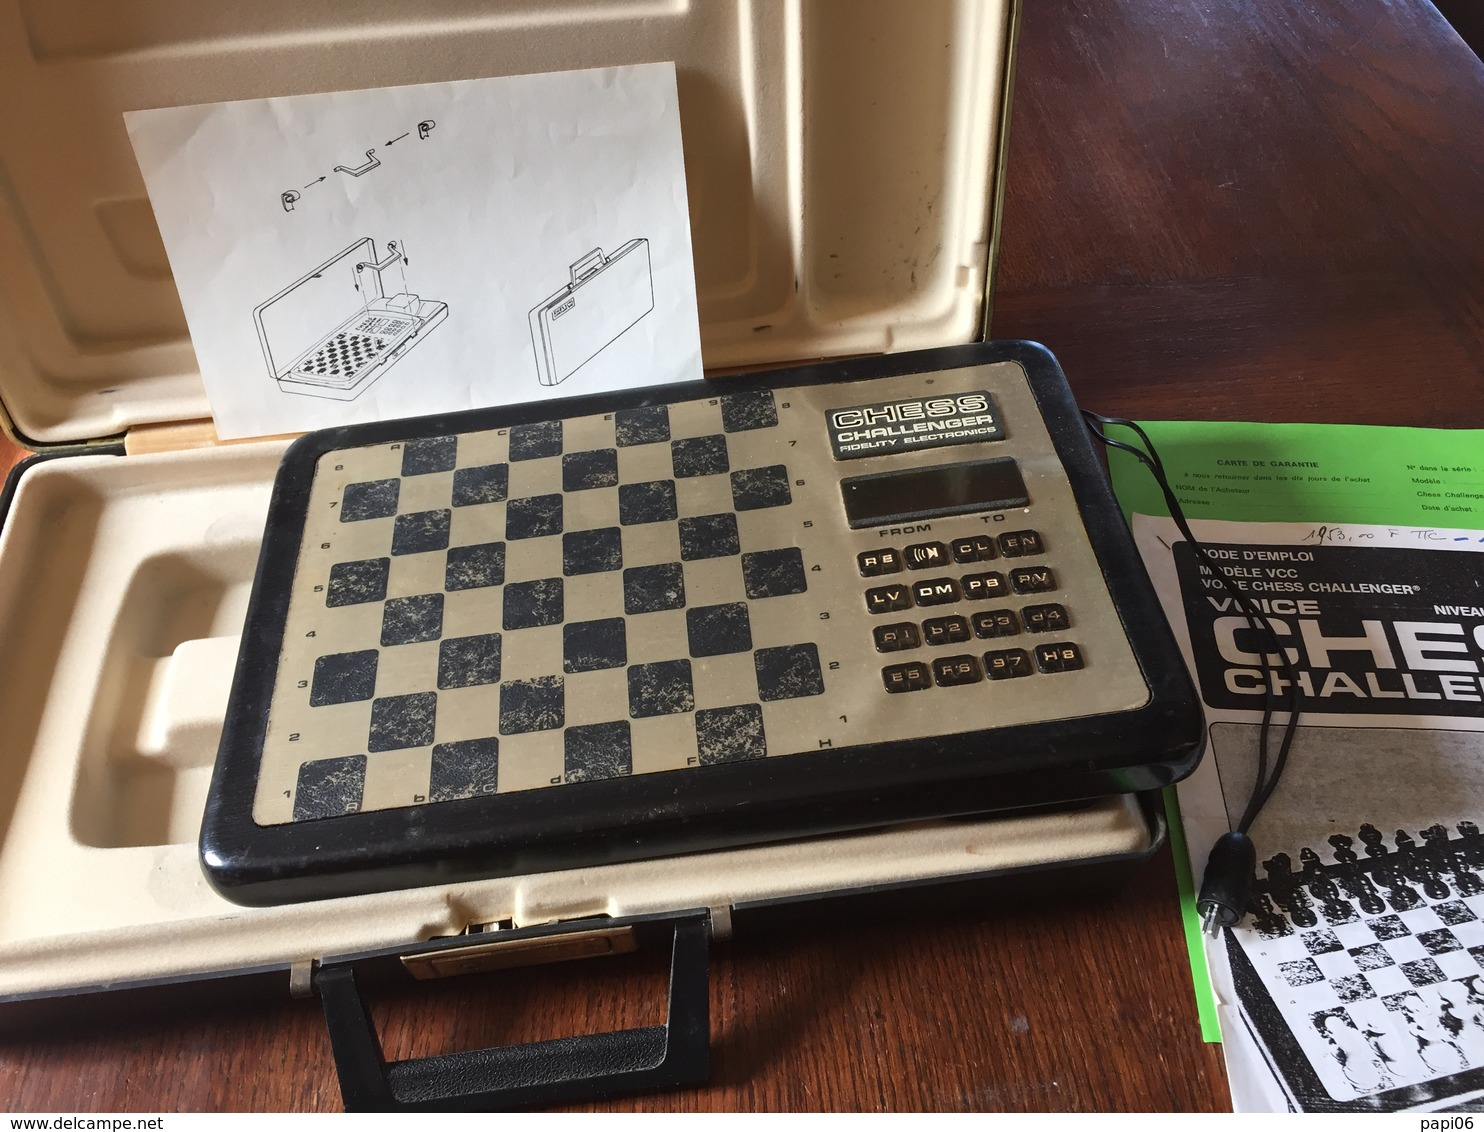 Echecs. Chess Challenger Voice - Electronic Games